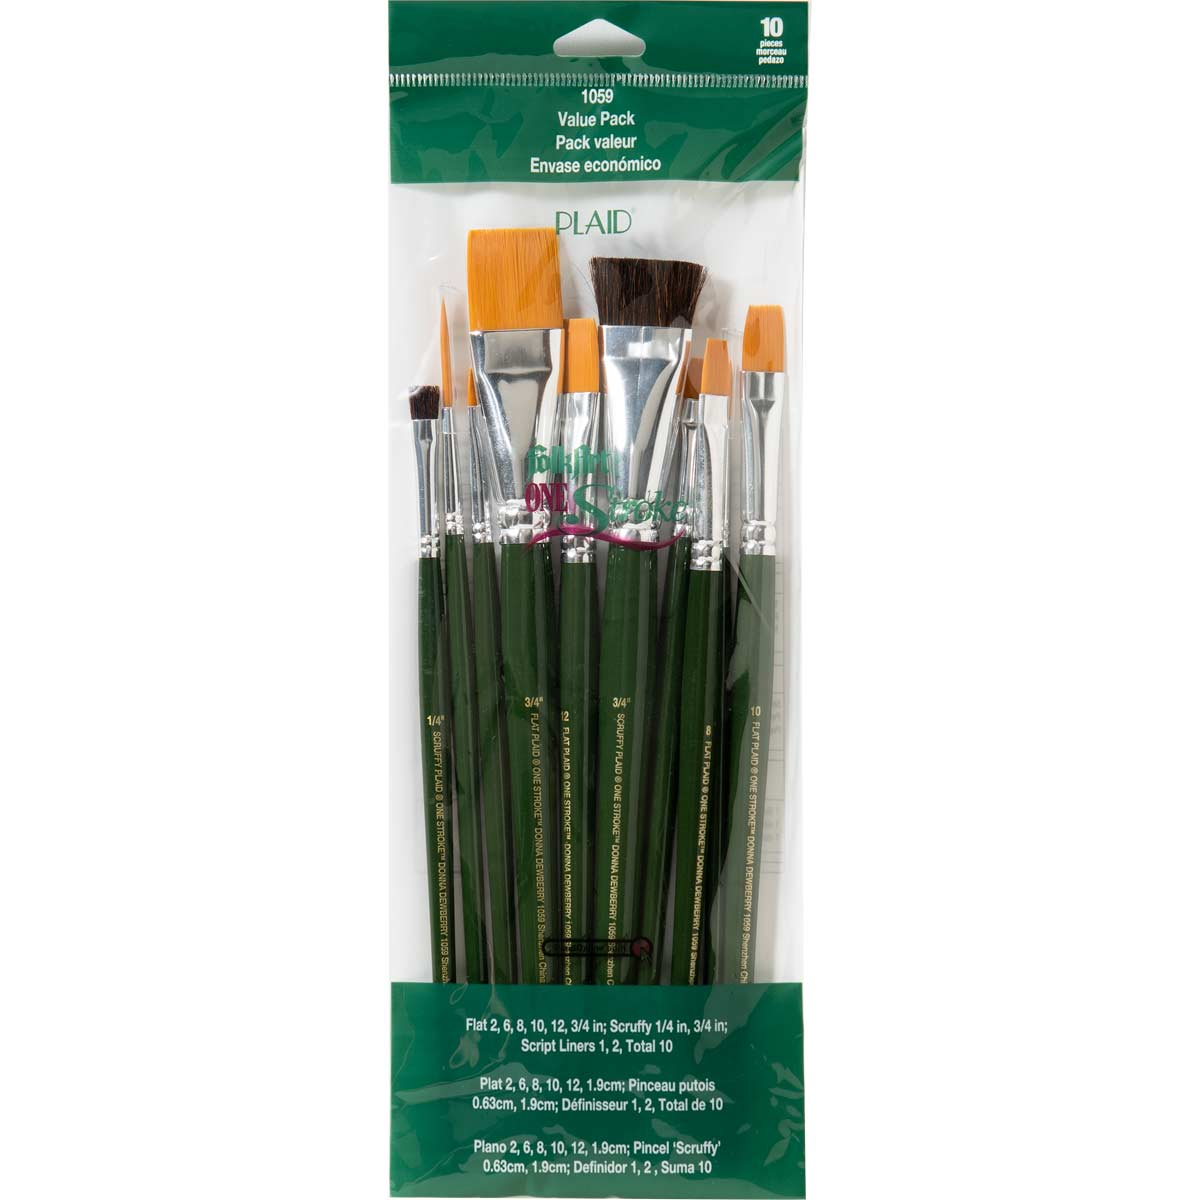 FolkArt ® One Stroke™ Brushes - Brush Sets - Value Pack